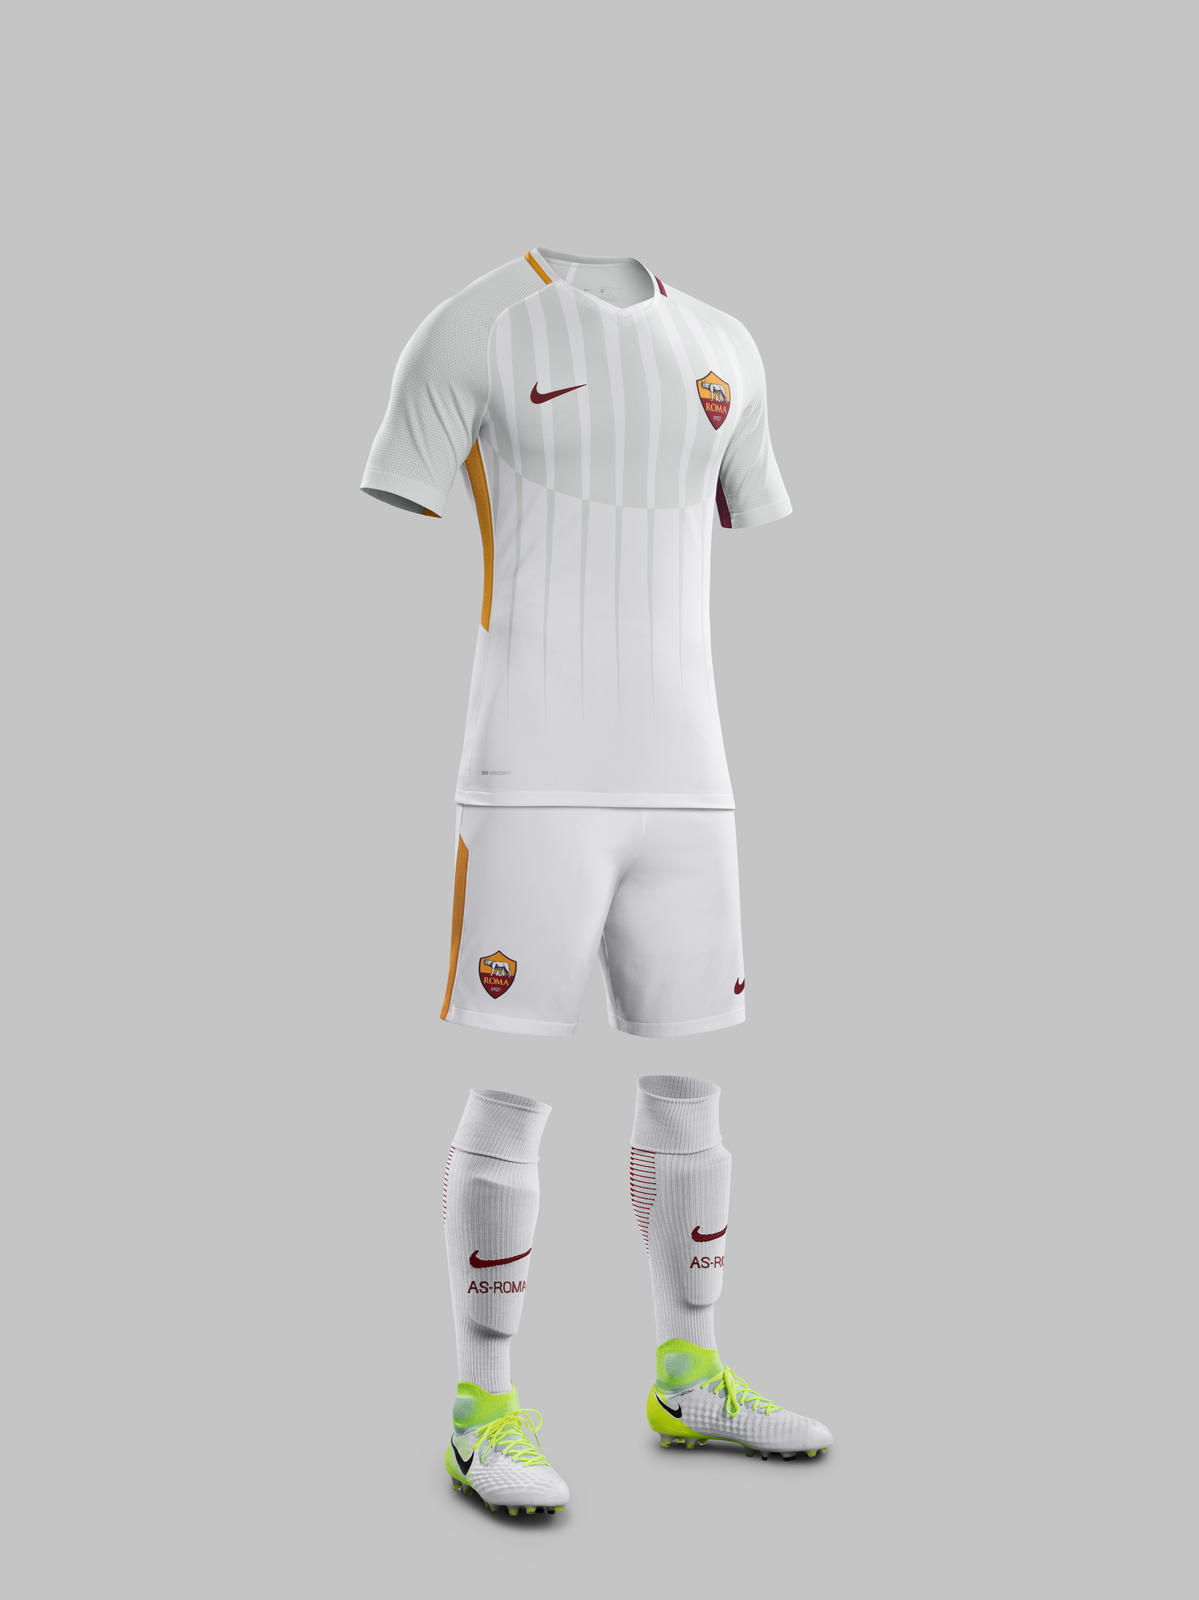 cheap for discount b7bb2 9aae4 ... Click to enlarge image asroma1718nikeawaykitb.jpg ...